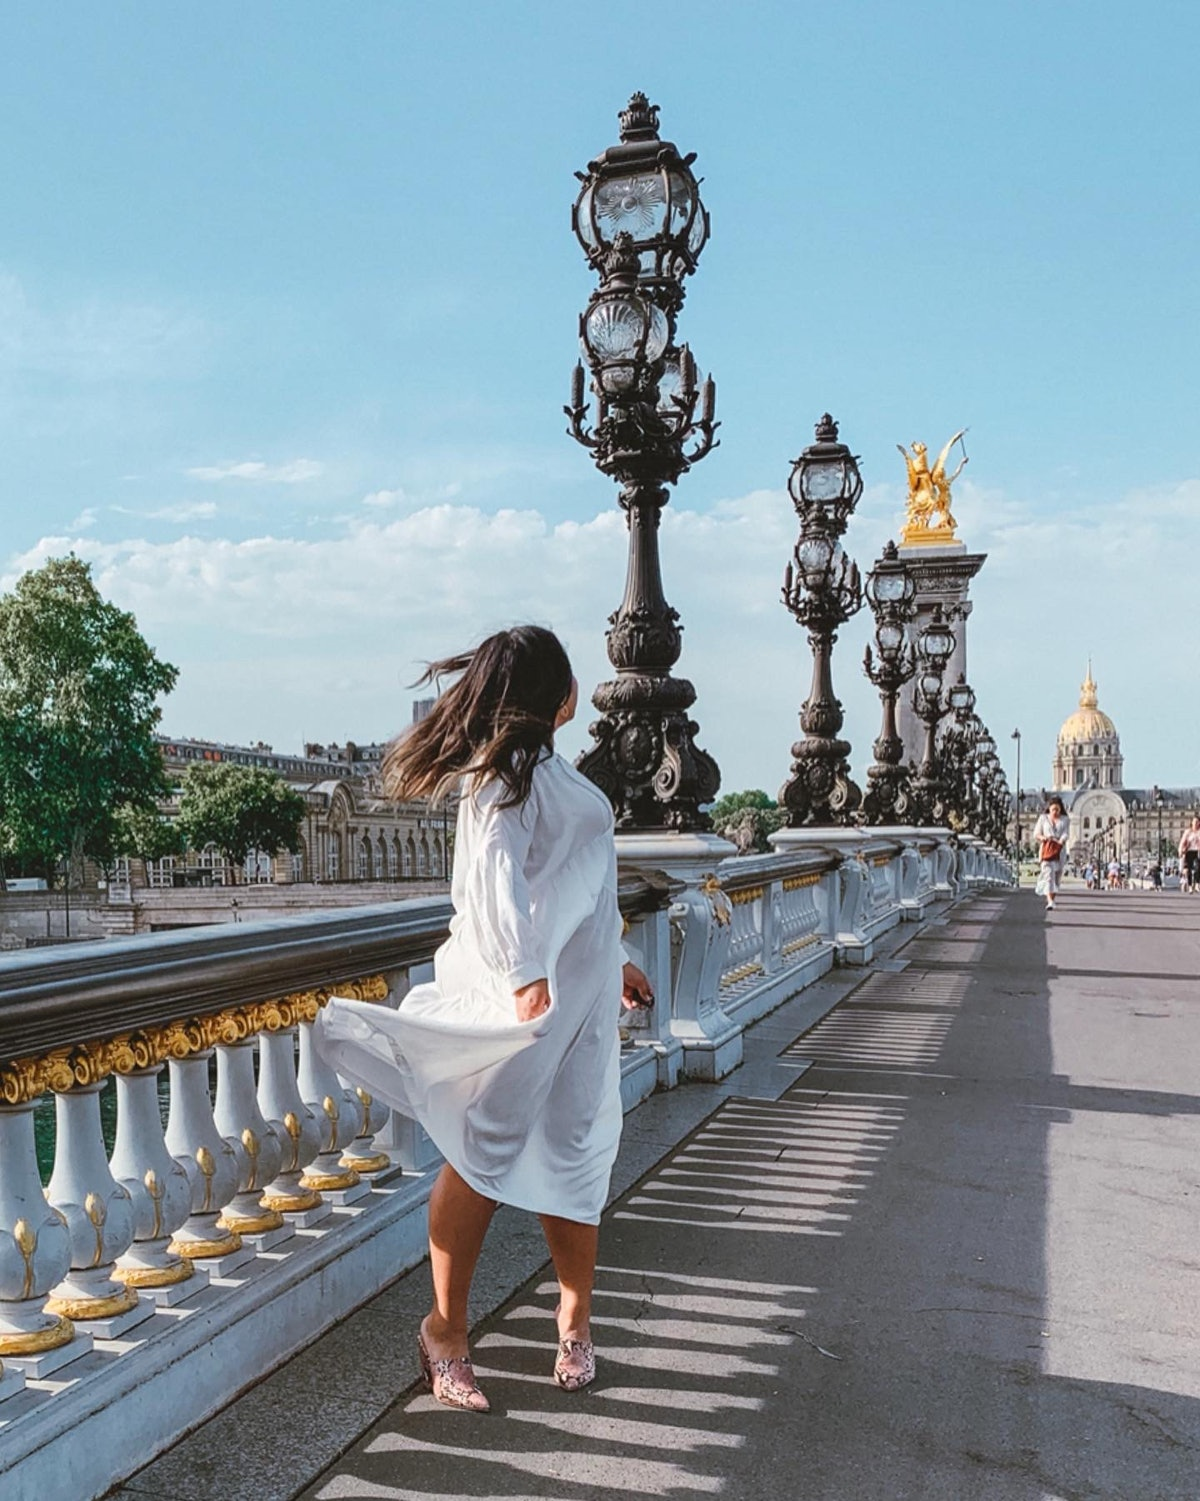 A woman in a flowy white dress poses with her hair blowing in the wind on the Pont Alexandre III.